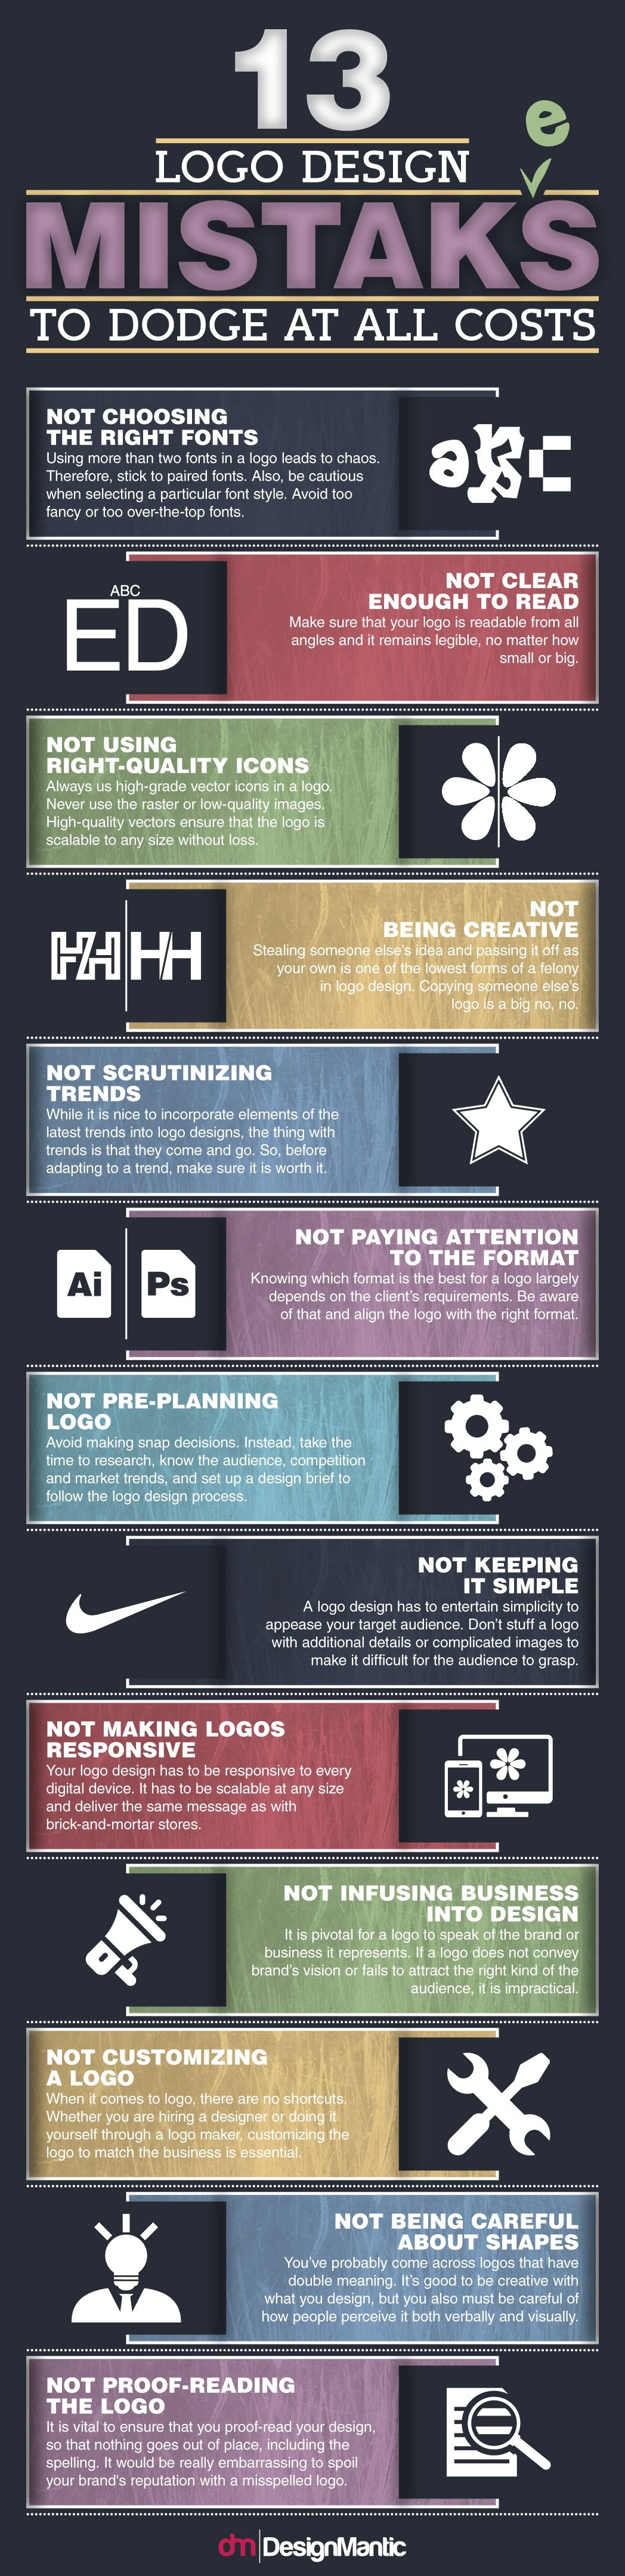 13 Logo Design Mistakes To Dodge At All Costs #Infographic